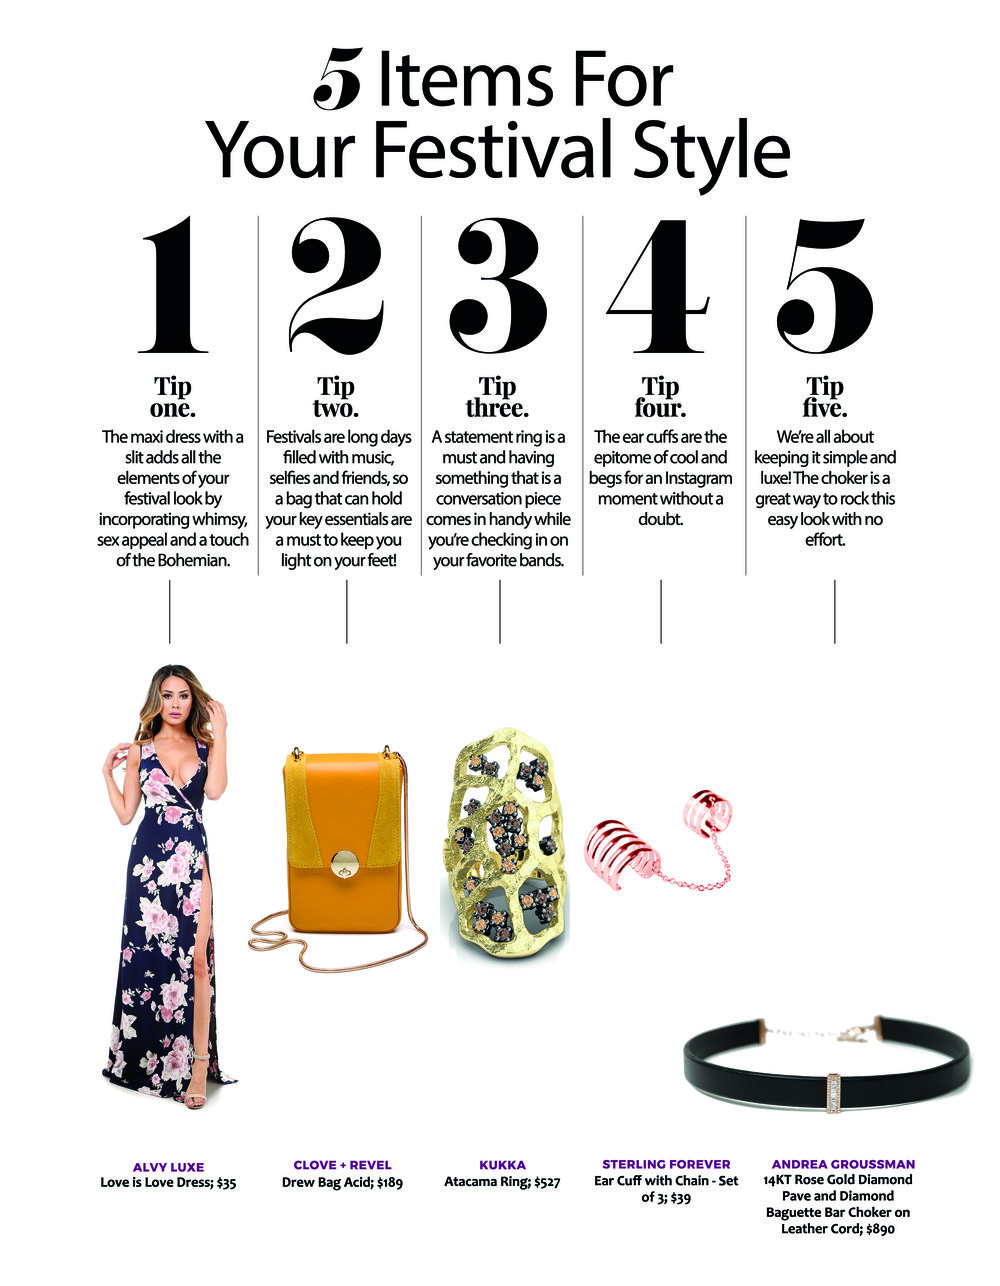 5 ITEMS FOR YOUR FESTIVAL STYLE.jpg